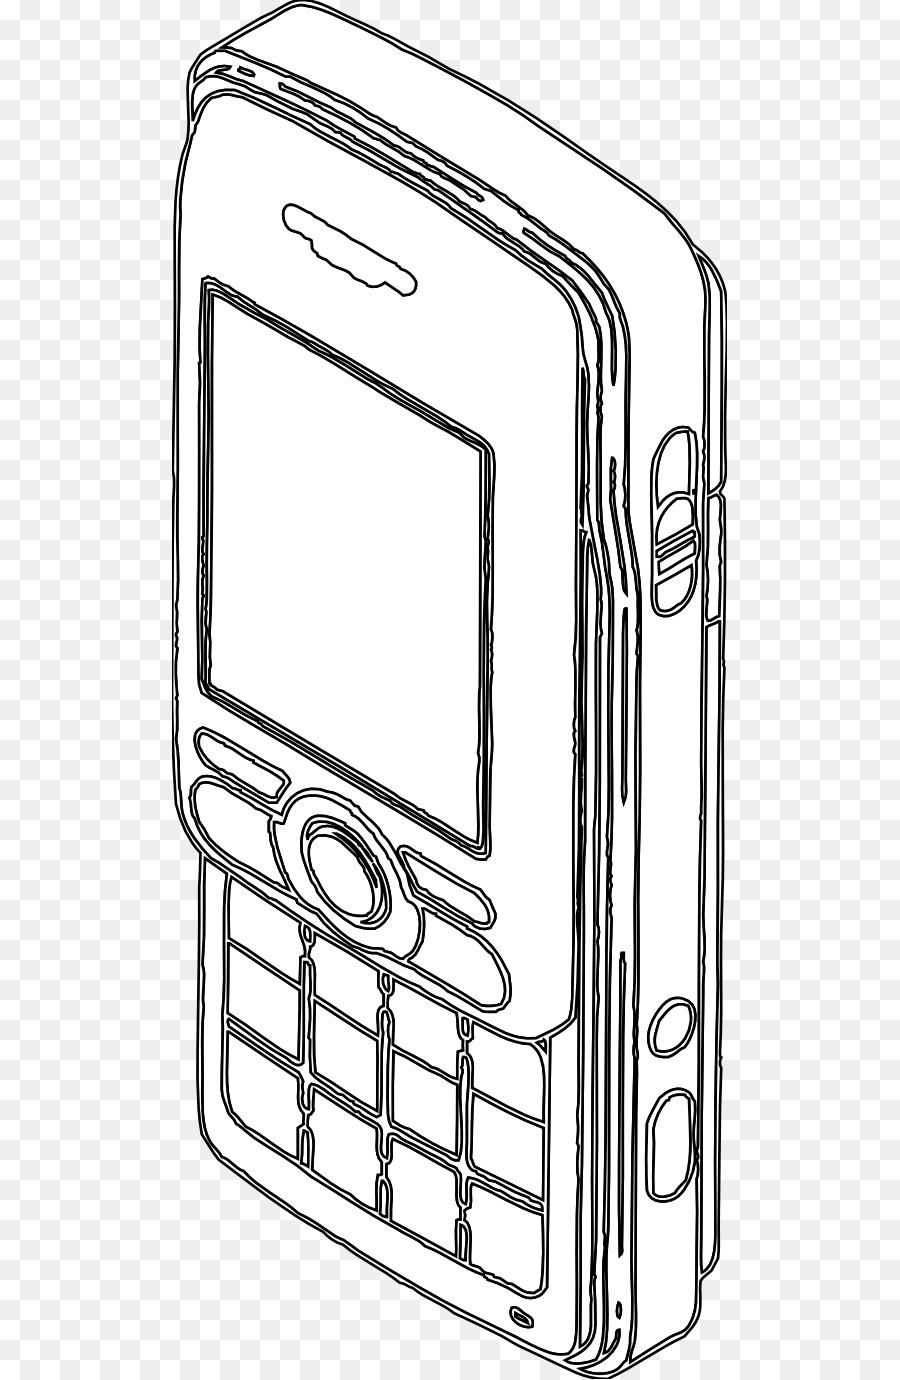 Coloring book iPhone Line art Text messaging - Iphone png download ...